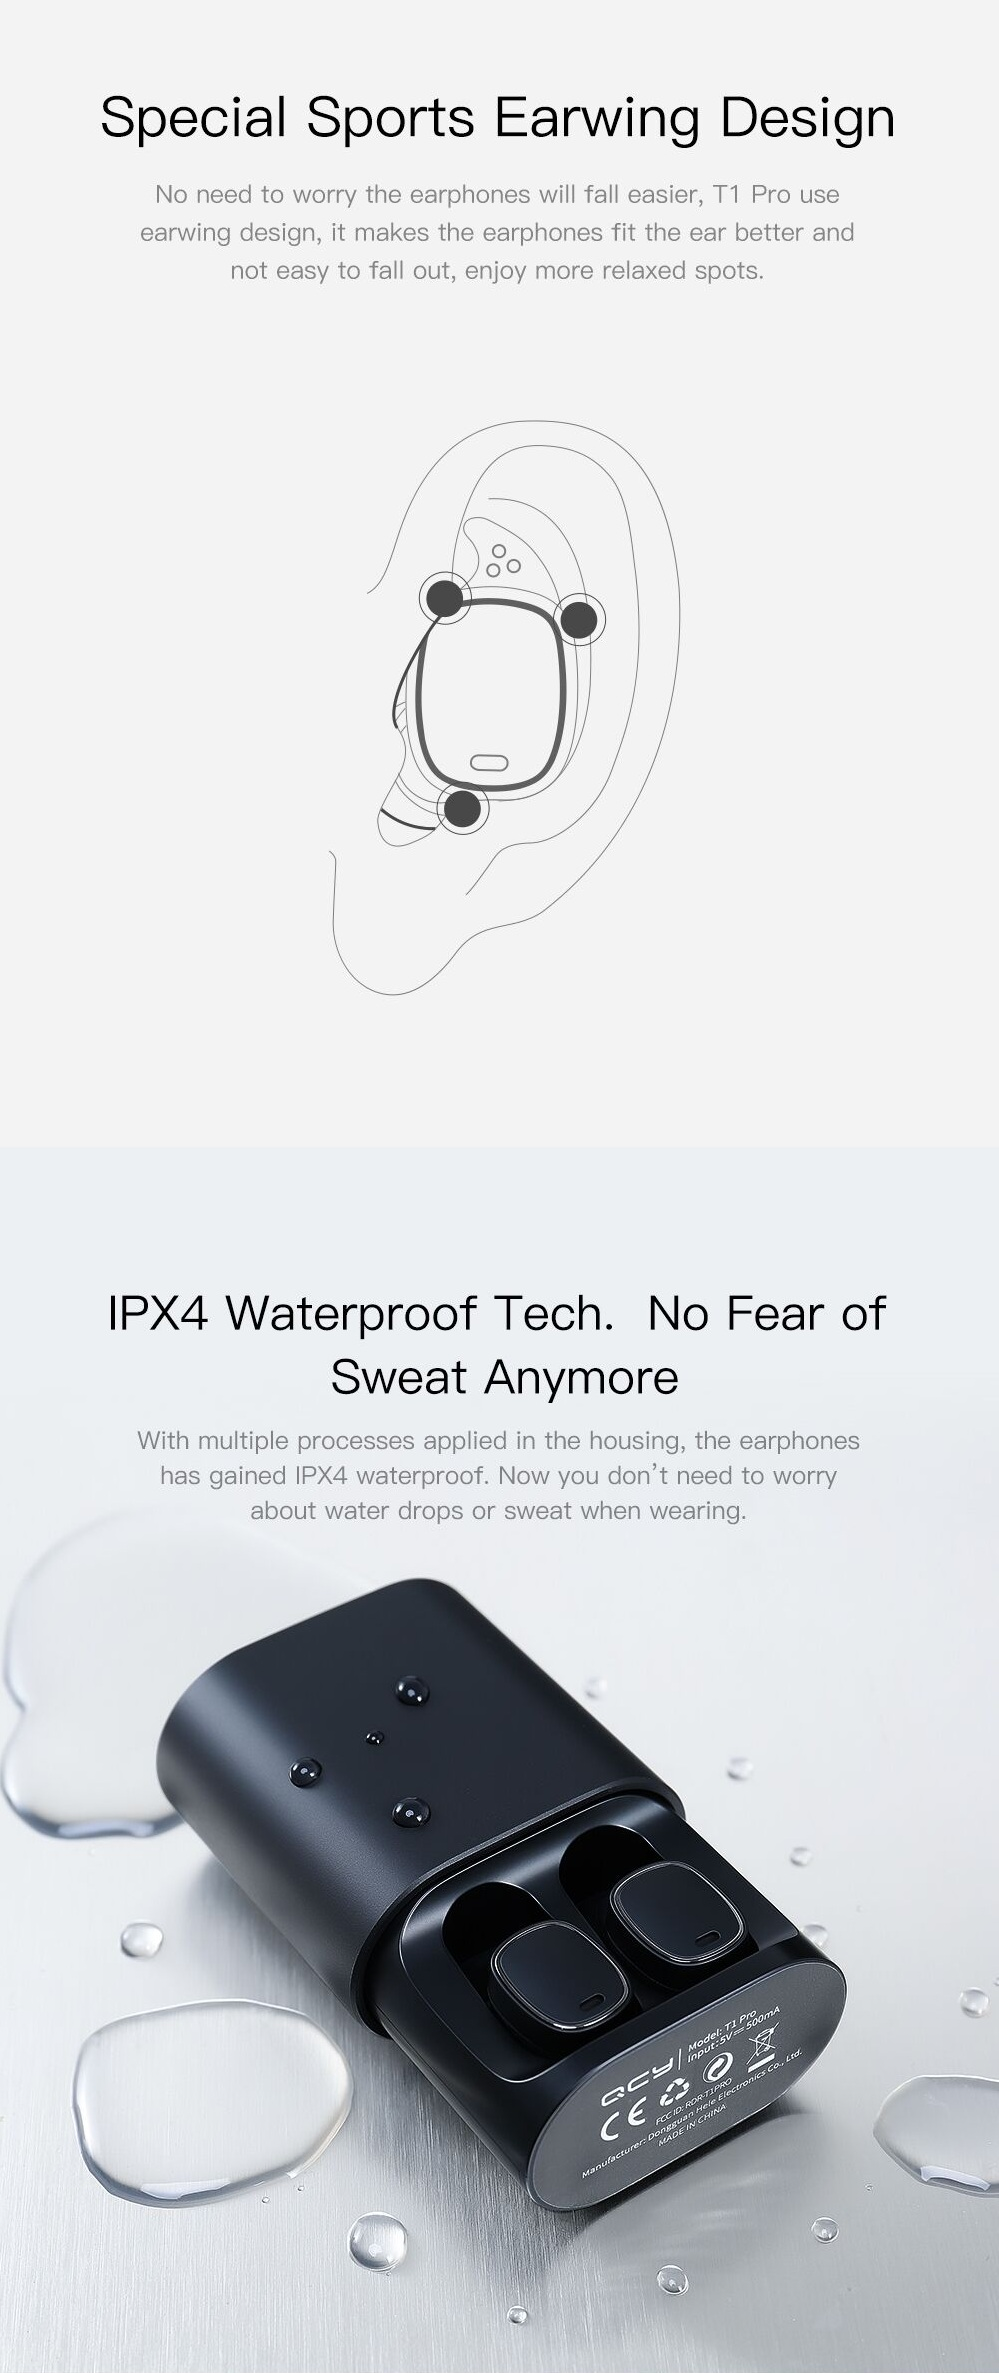 [True Wireless] Xiaomi QCY T1 PRO TWS Dual bluetooth Earphone IPX4 Waterproof Headphones with Charging Box